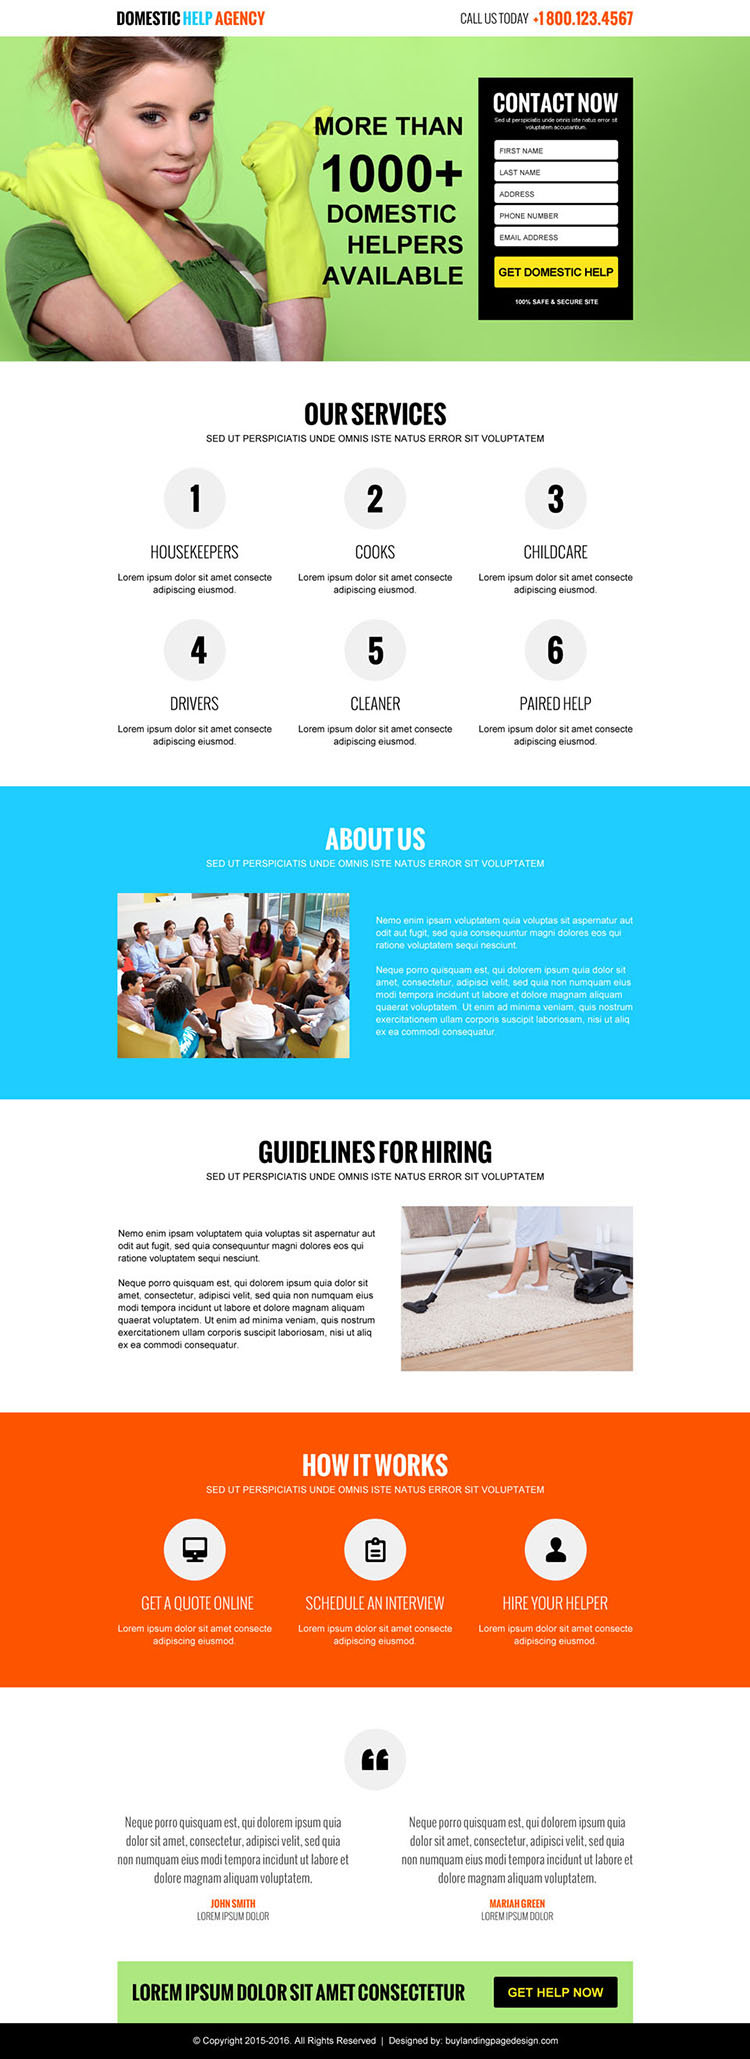 domestic help agency lead capture landing page design template